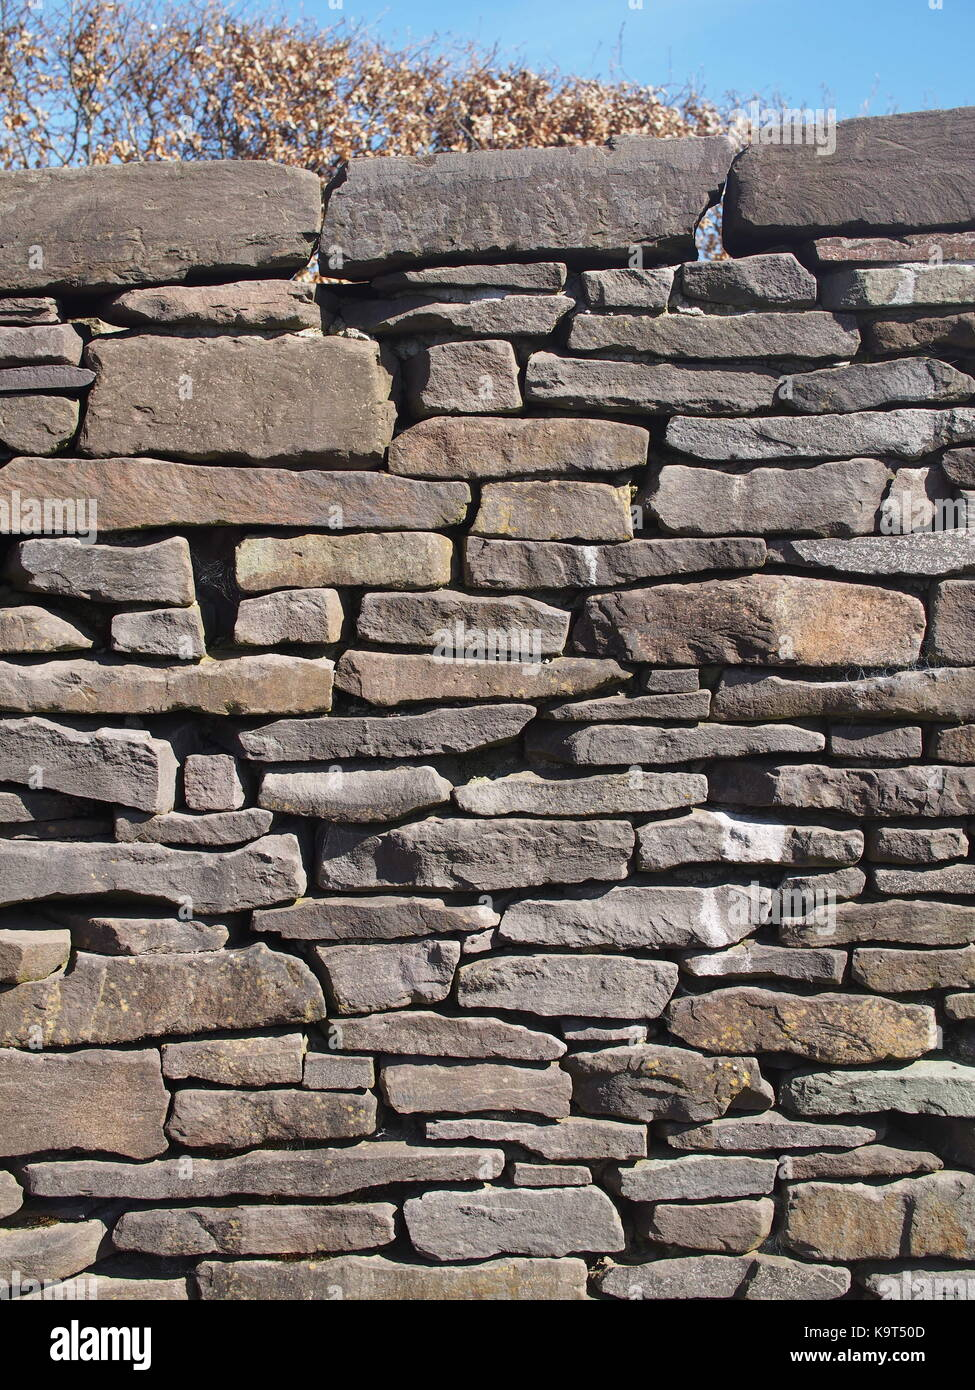 Detail of dry stone wall in Wales made from Old Red Sandstone - Stock Image